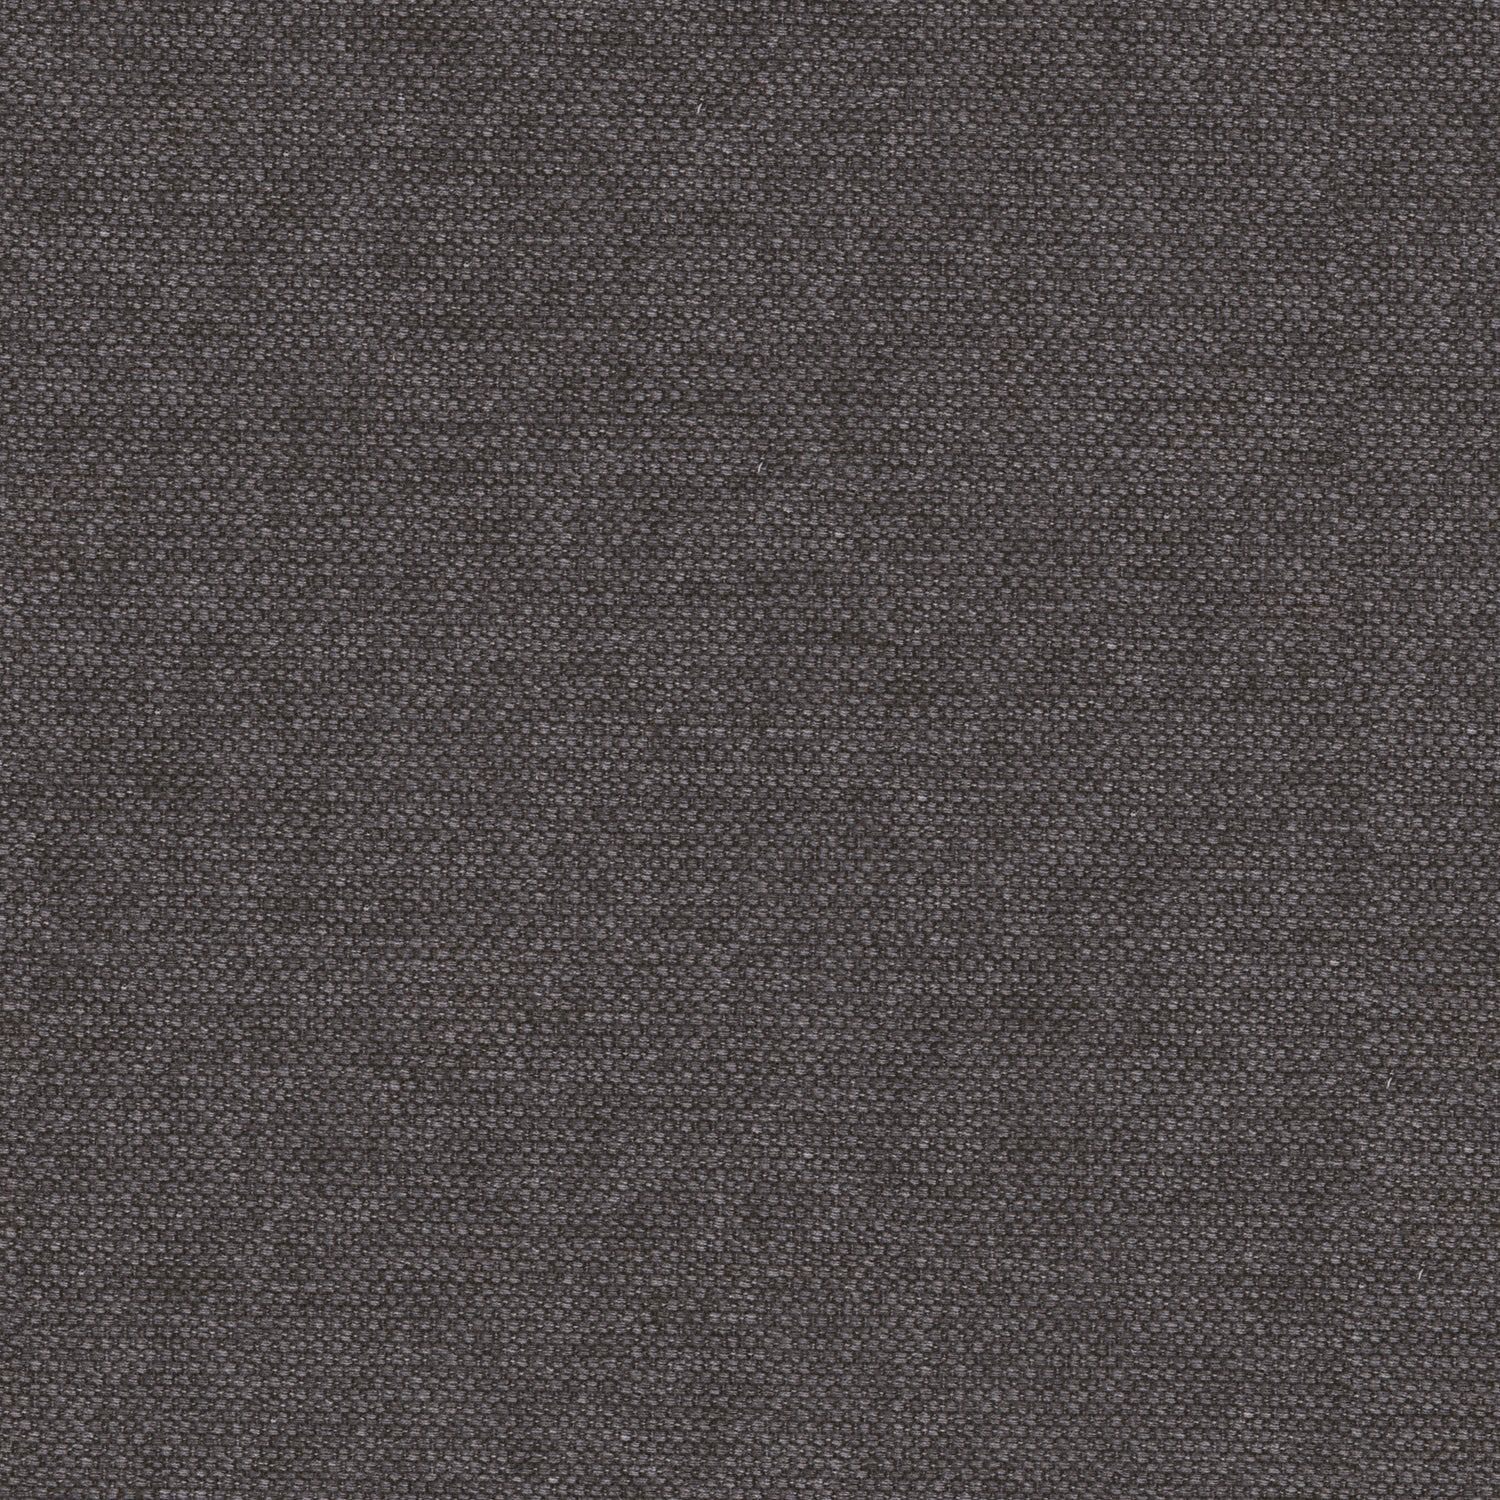 Dark petrol blue plain cotton fabric for curtains and upholstery